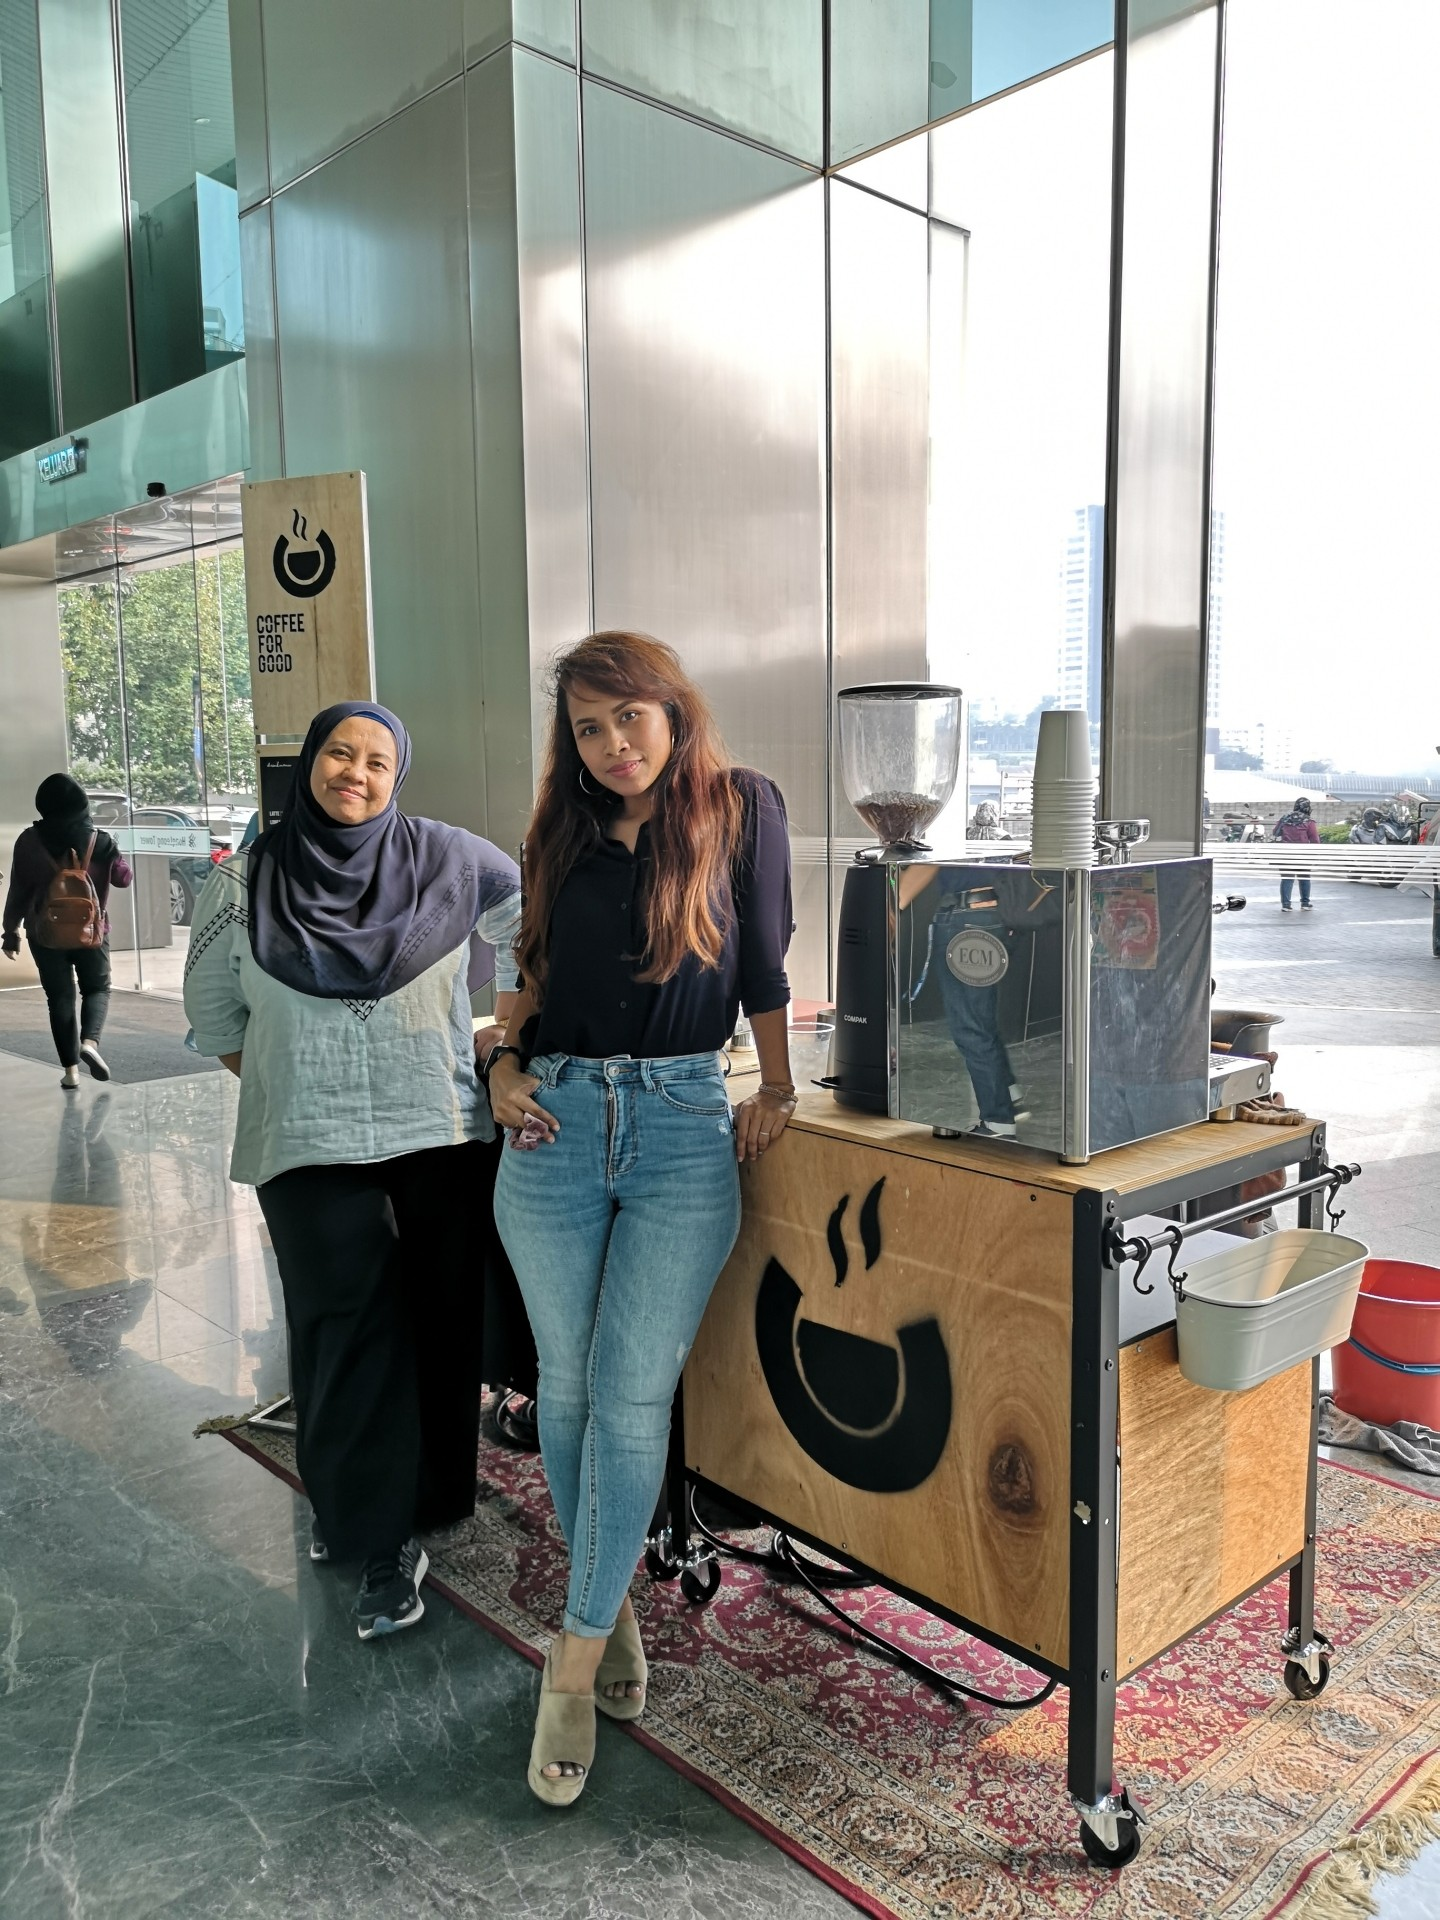 Faridah and Dahlia are happy to be pursuing their passion while helping under privileged youth..